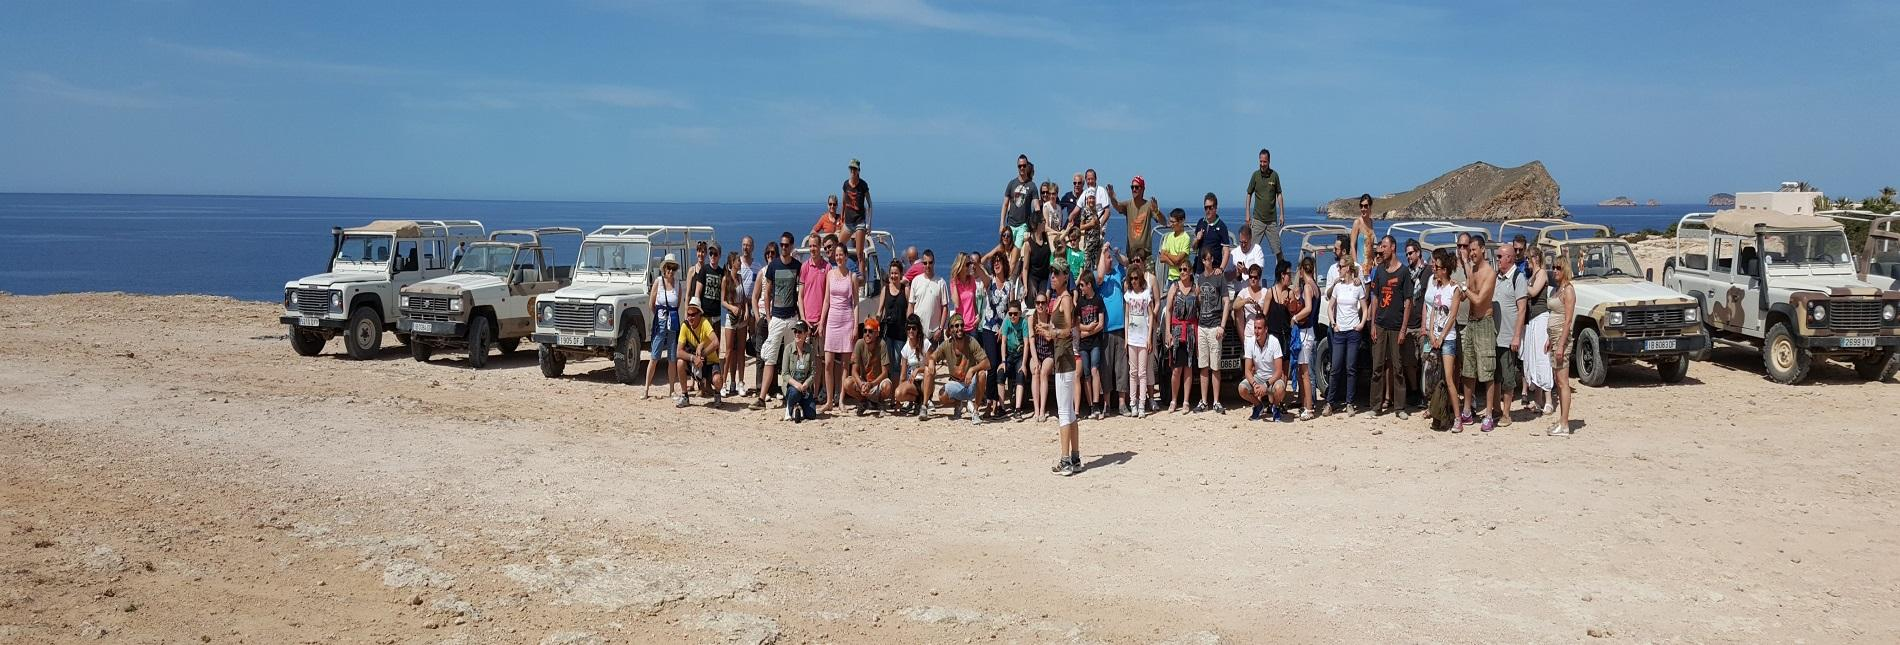 oleis-travel-events-animations-incentive-team-building-provence-voitures-les-calanques